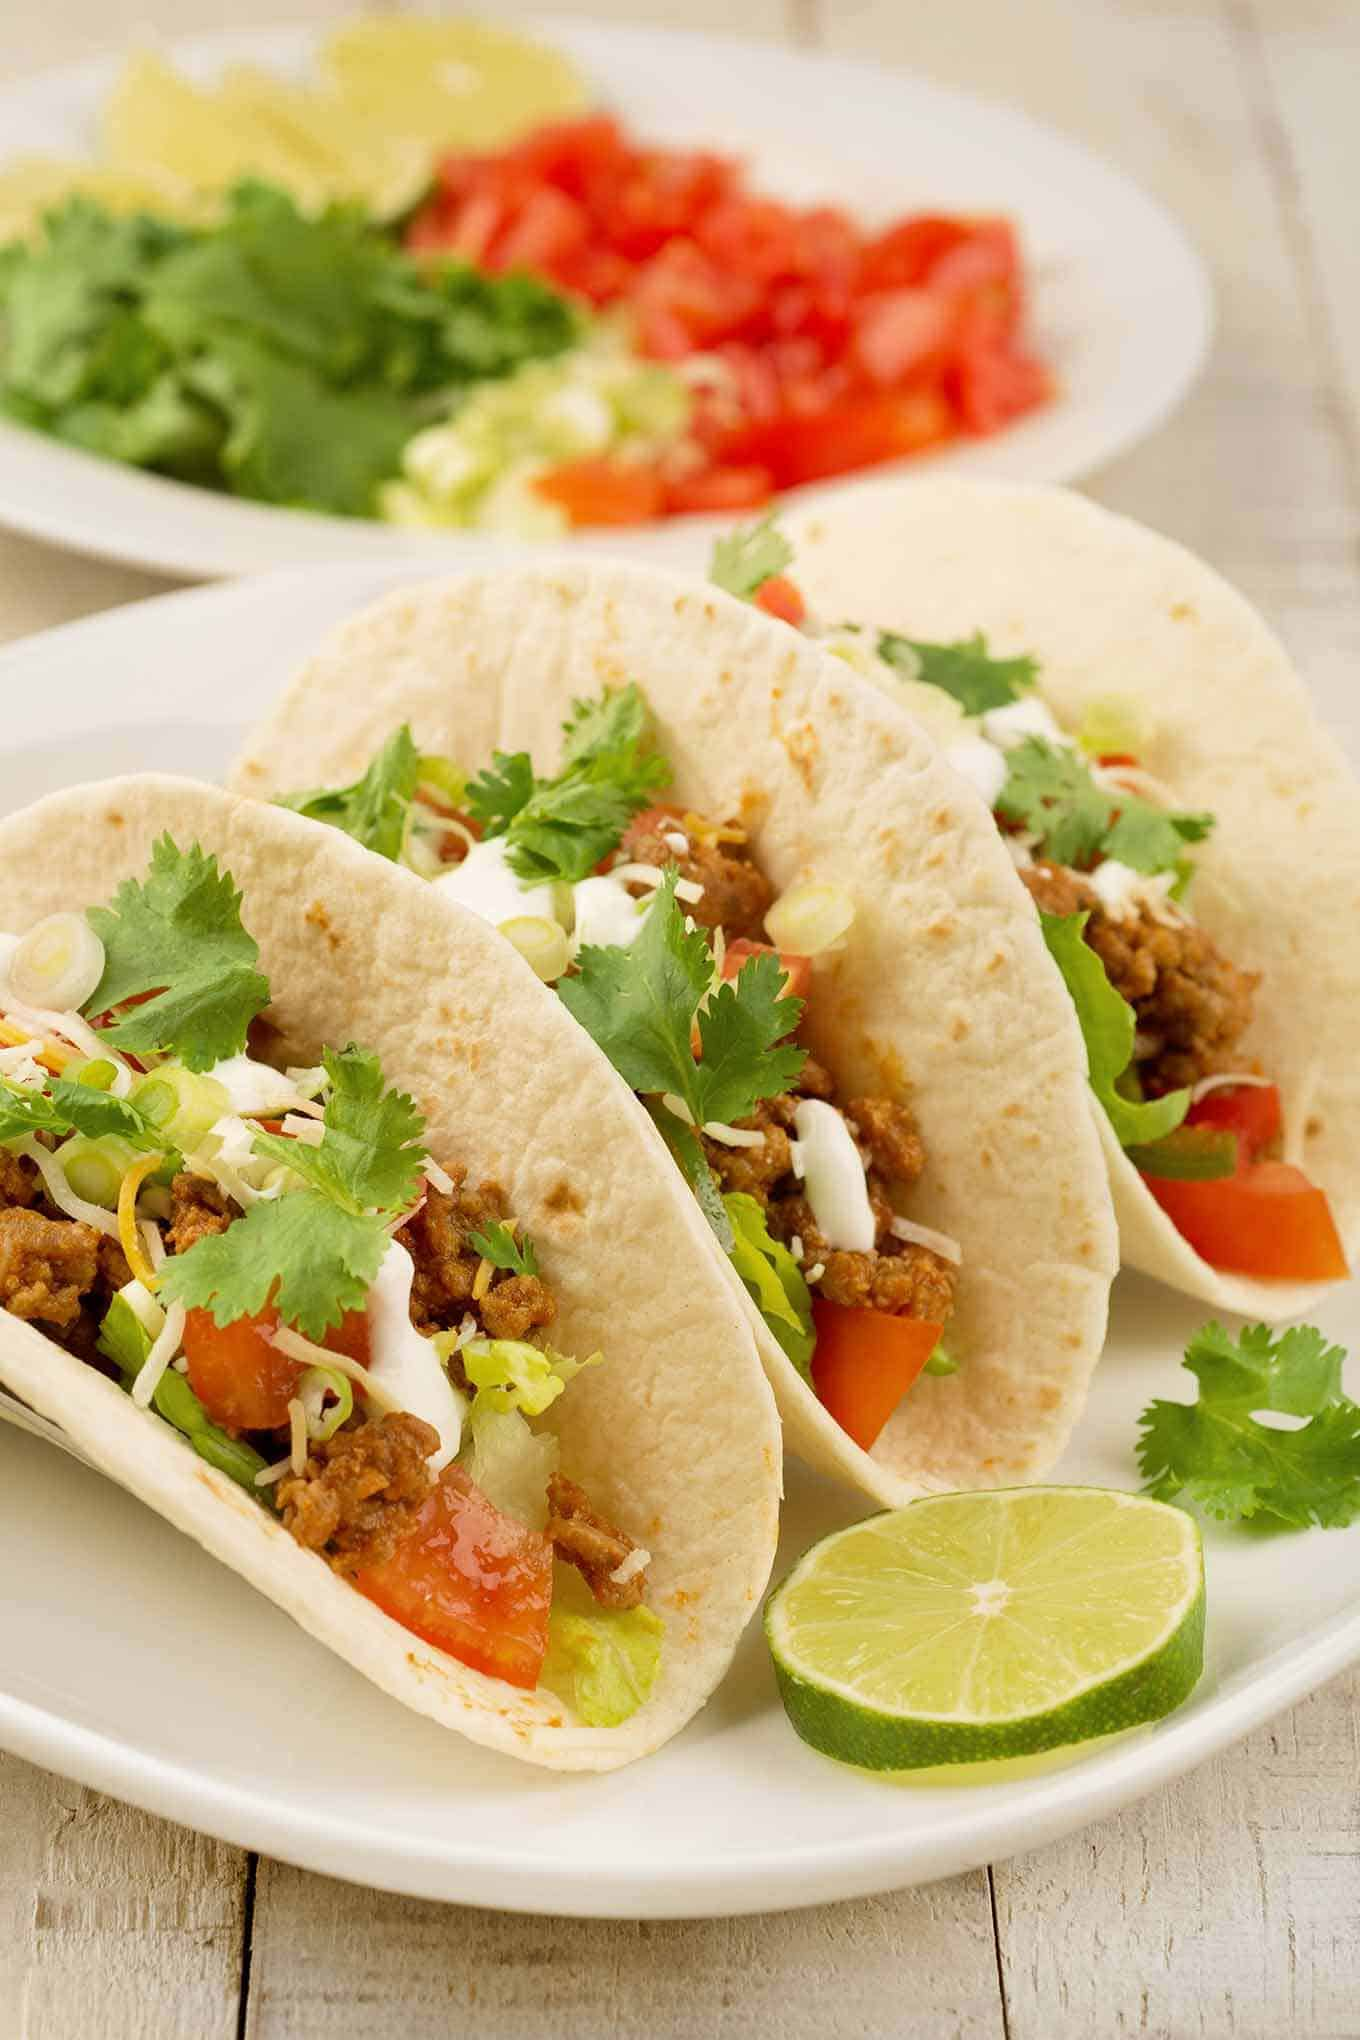 Three ground turkey tacos on a plate with a lime wheel.